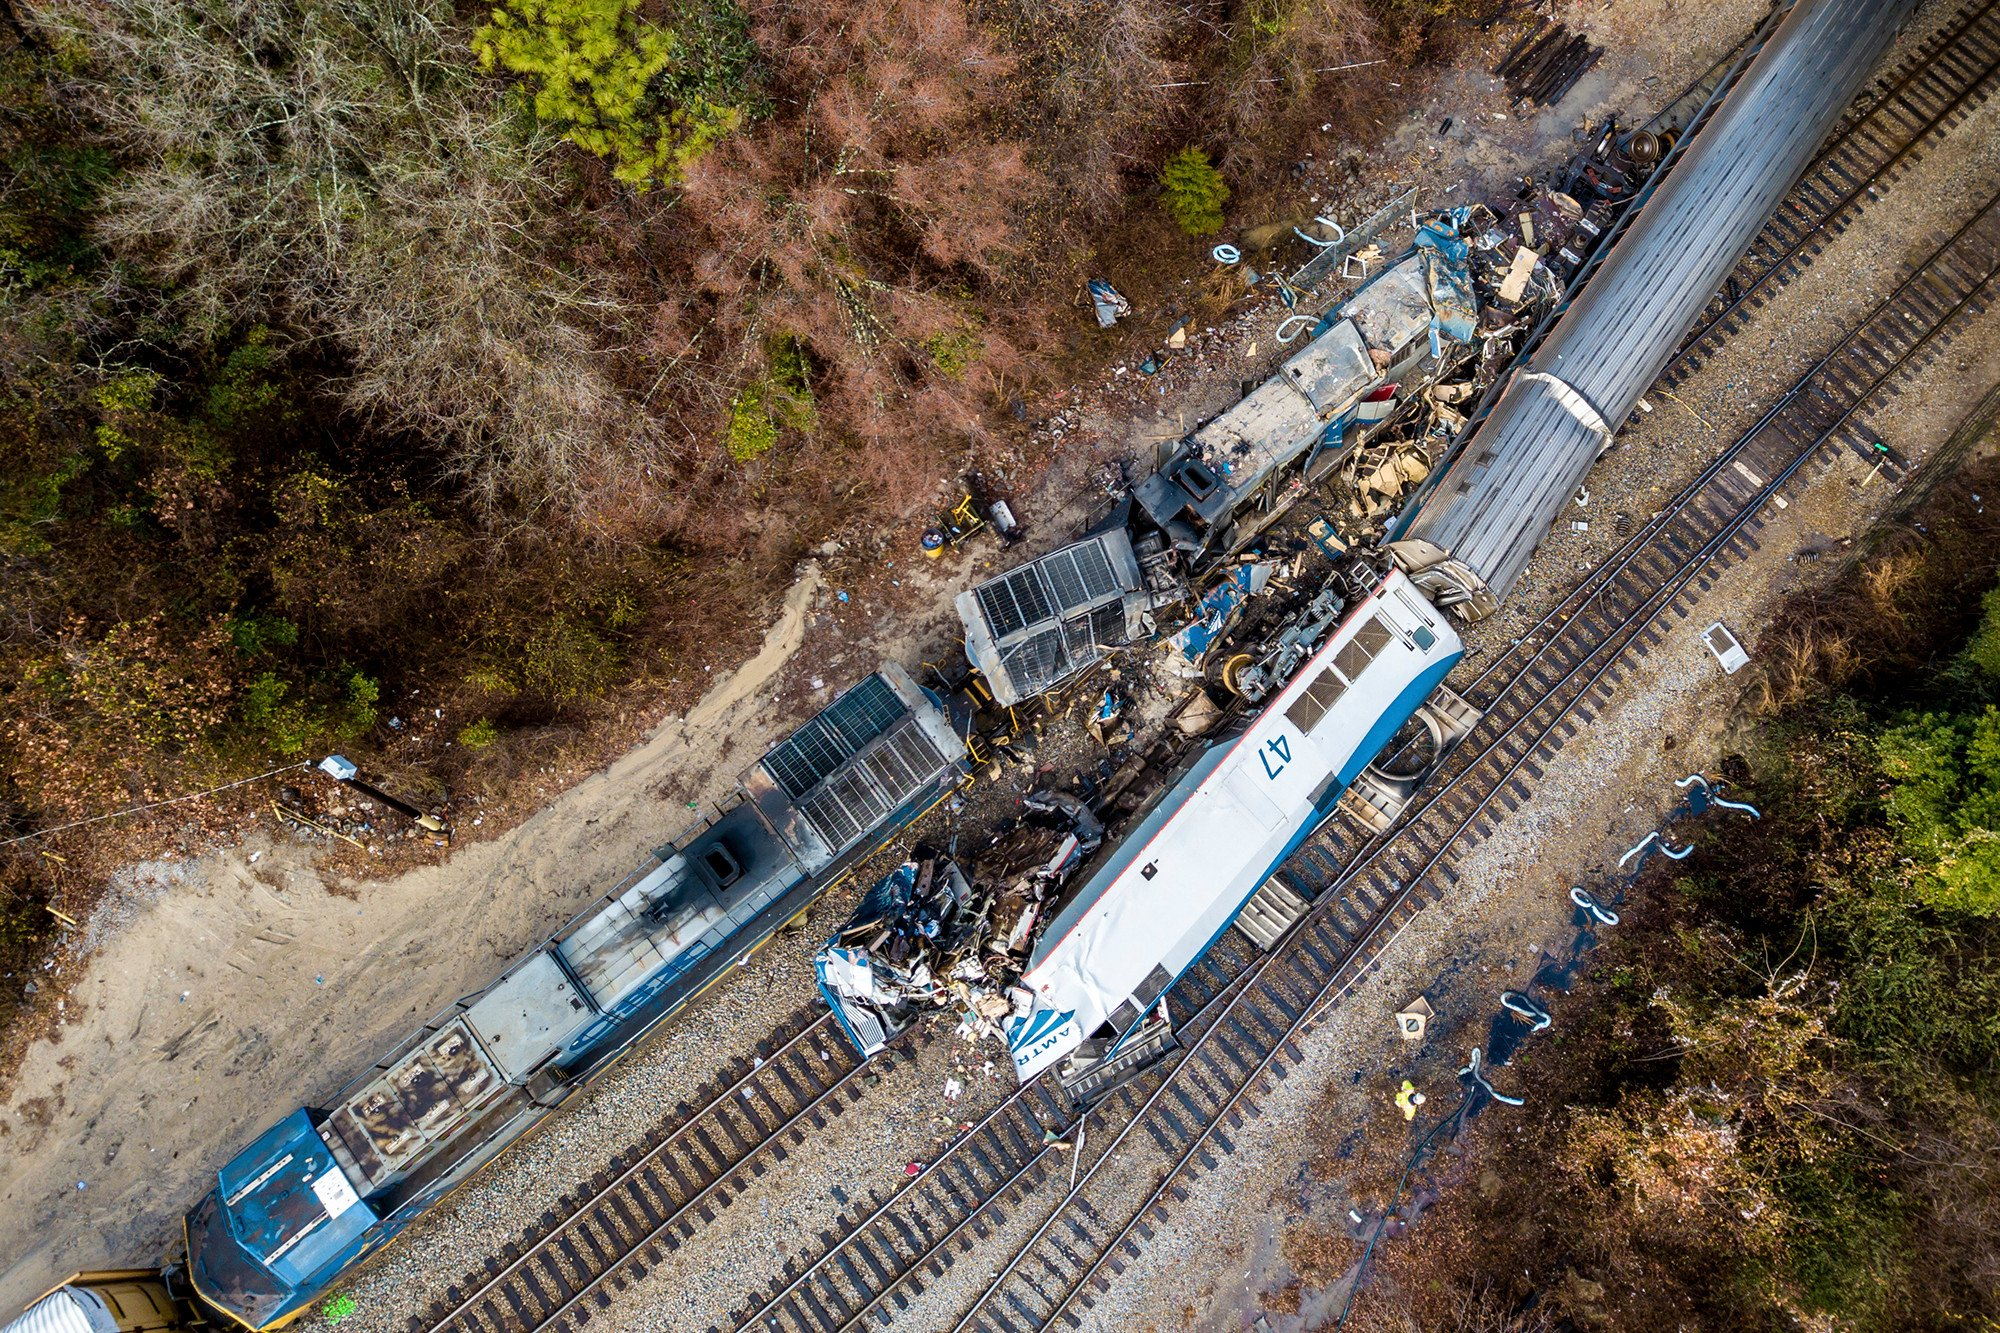 Amtrak conductor killed in crash was worried about rail safety, sister-in-law says